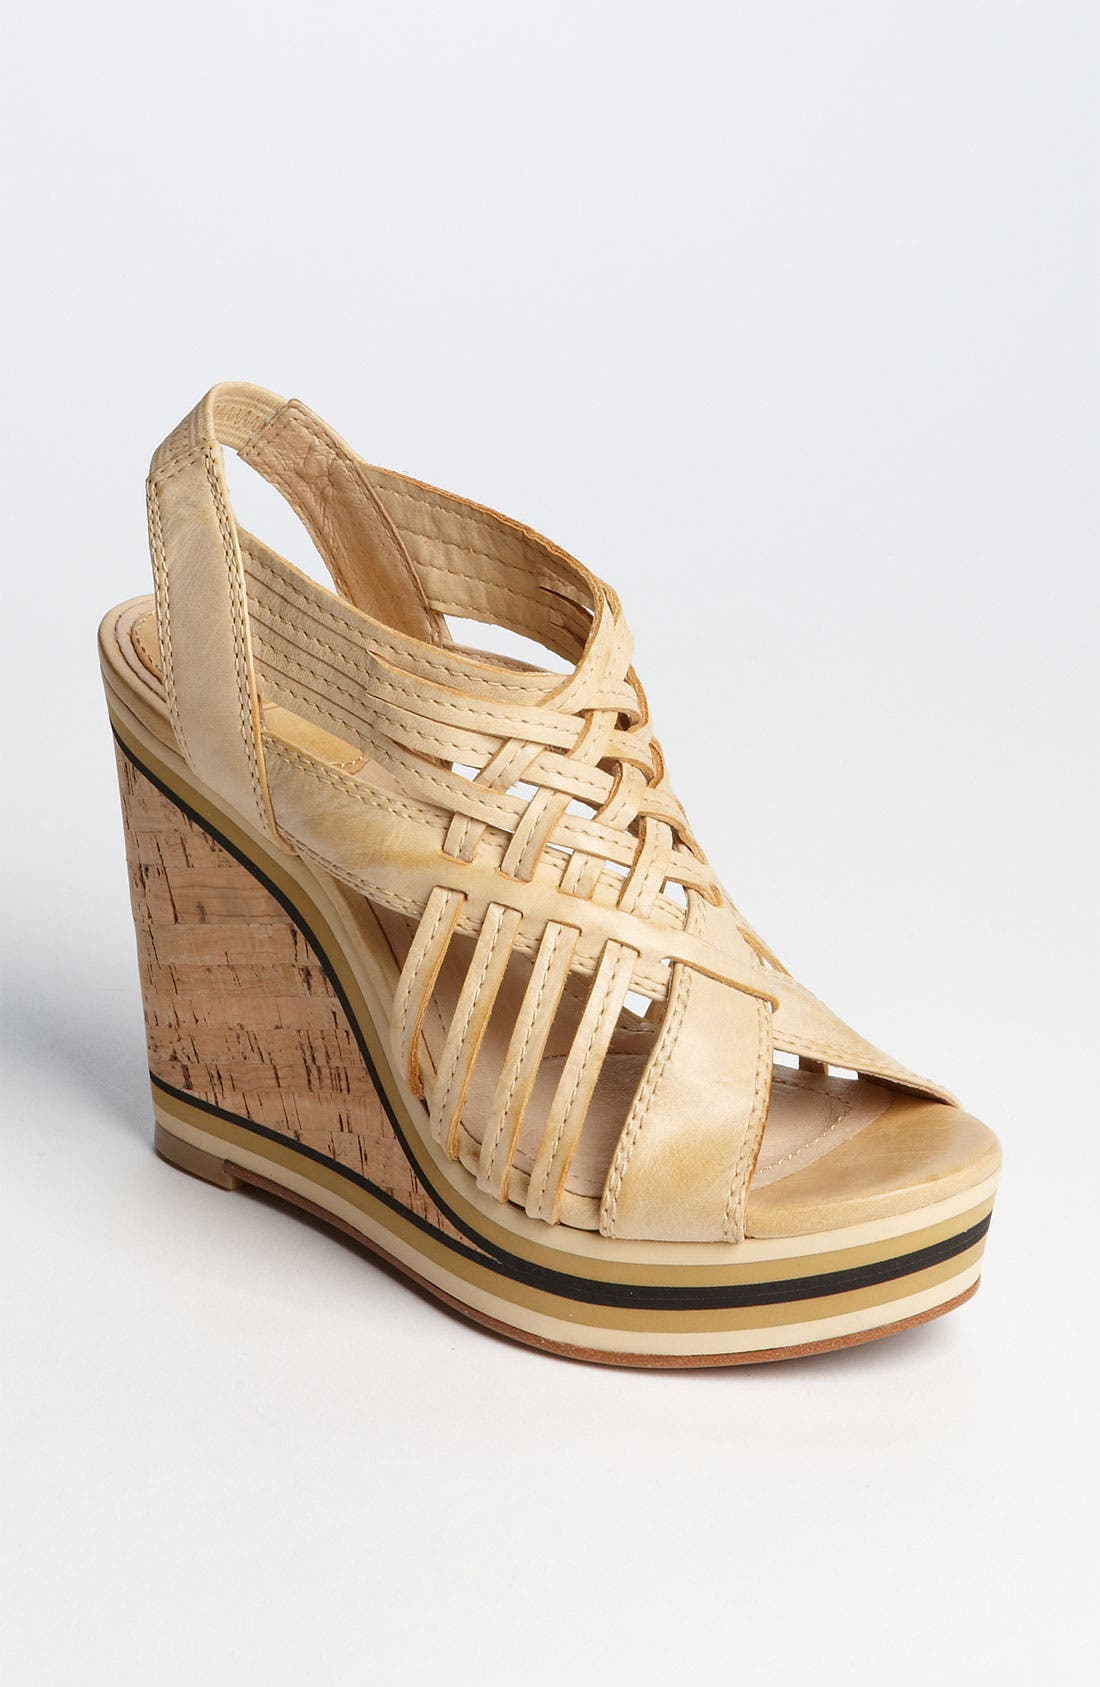 Alternate Image 1 Selected - Frye 'Corrina' Woven Sandal